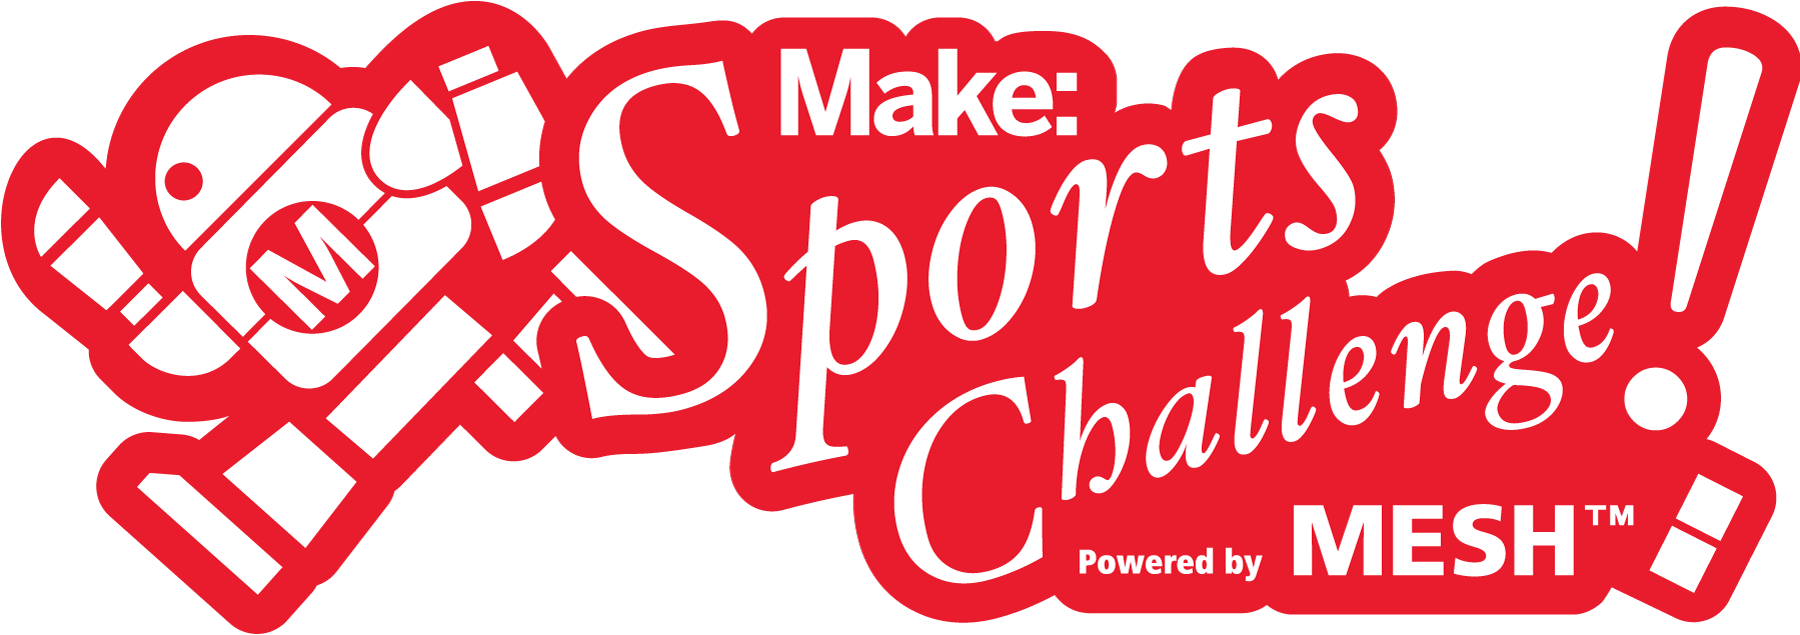 MakeSportsChallenge